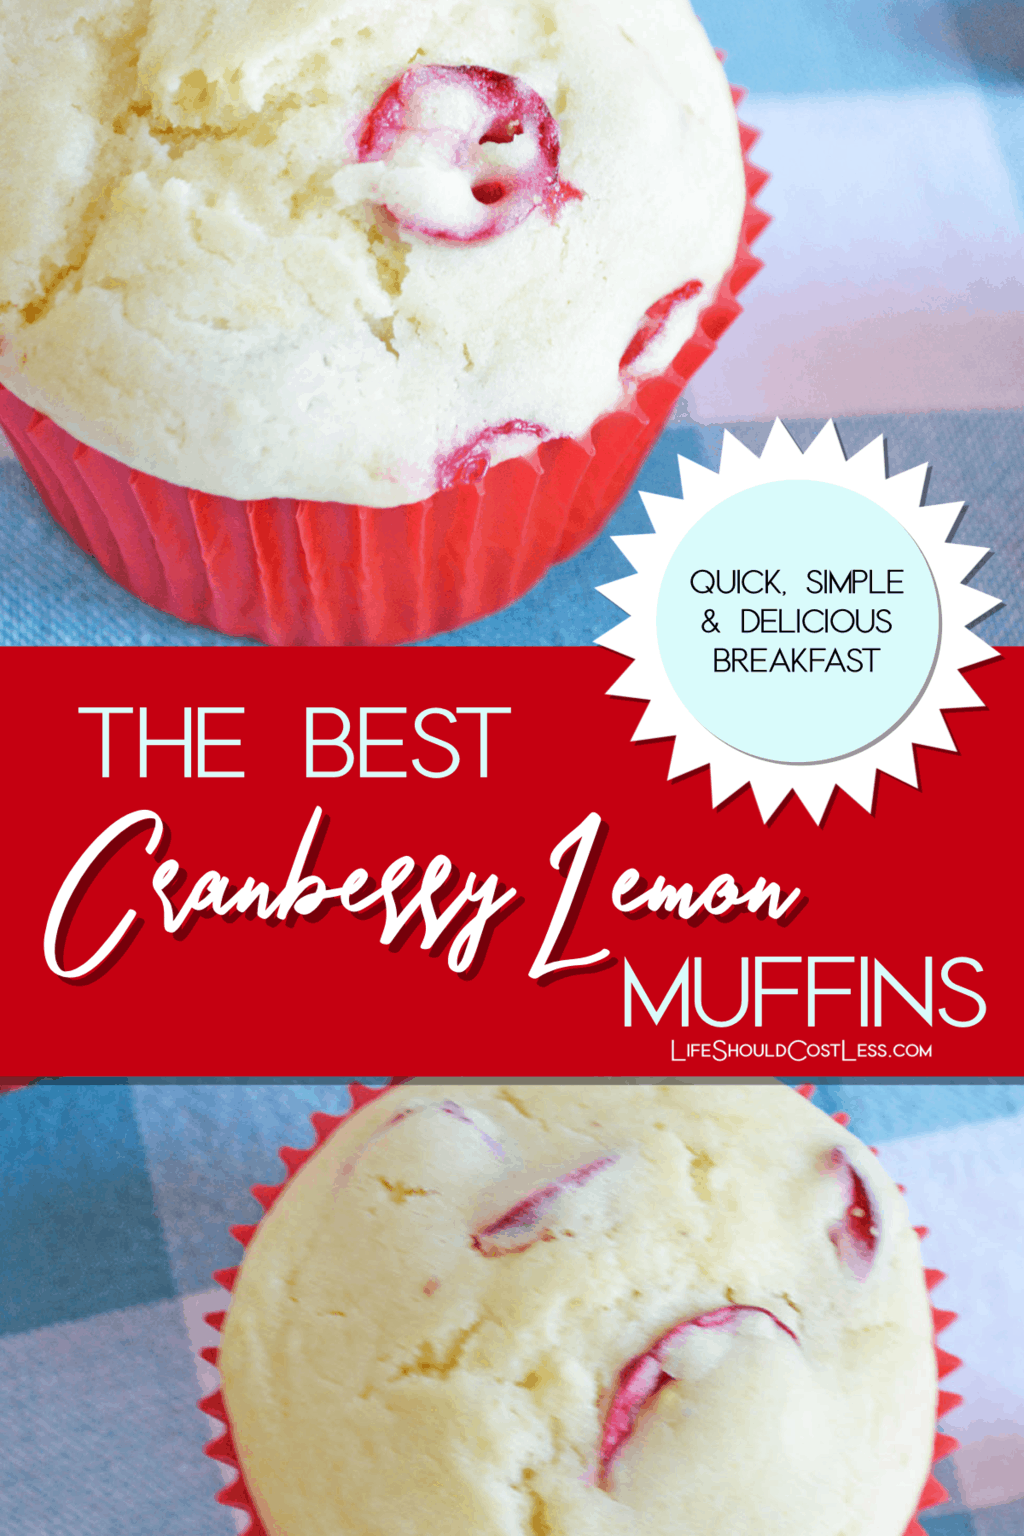 The Best Cranberry Lemon Muffins Breakfast Muffins lifeshouldcostless.com